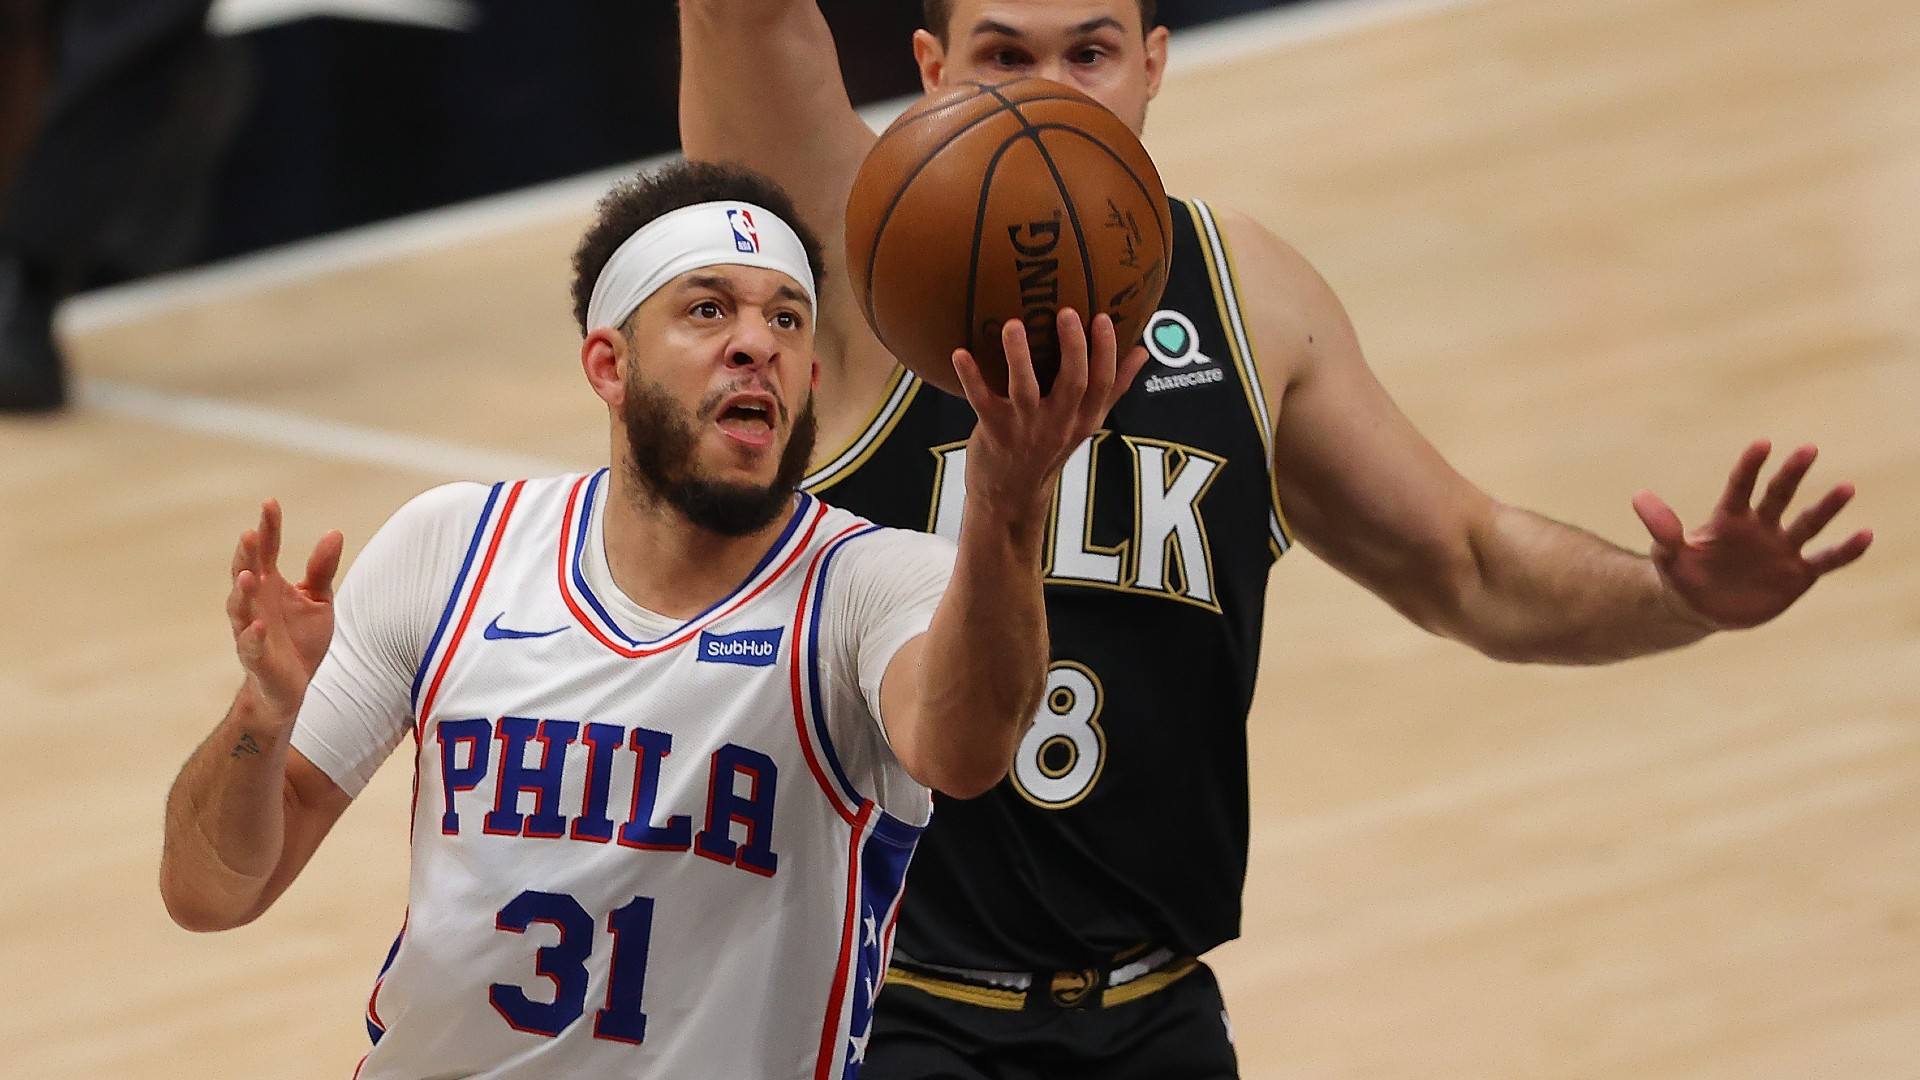 With the 76ers season in balance, Seth Curry and Tyrese Maxey emerge as unlikely Game 6 heroes